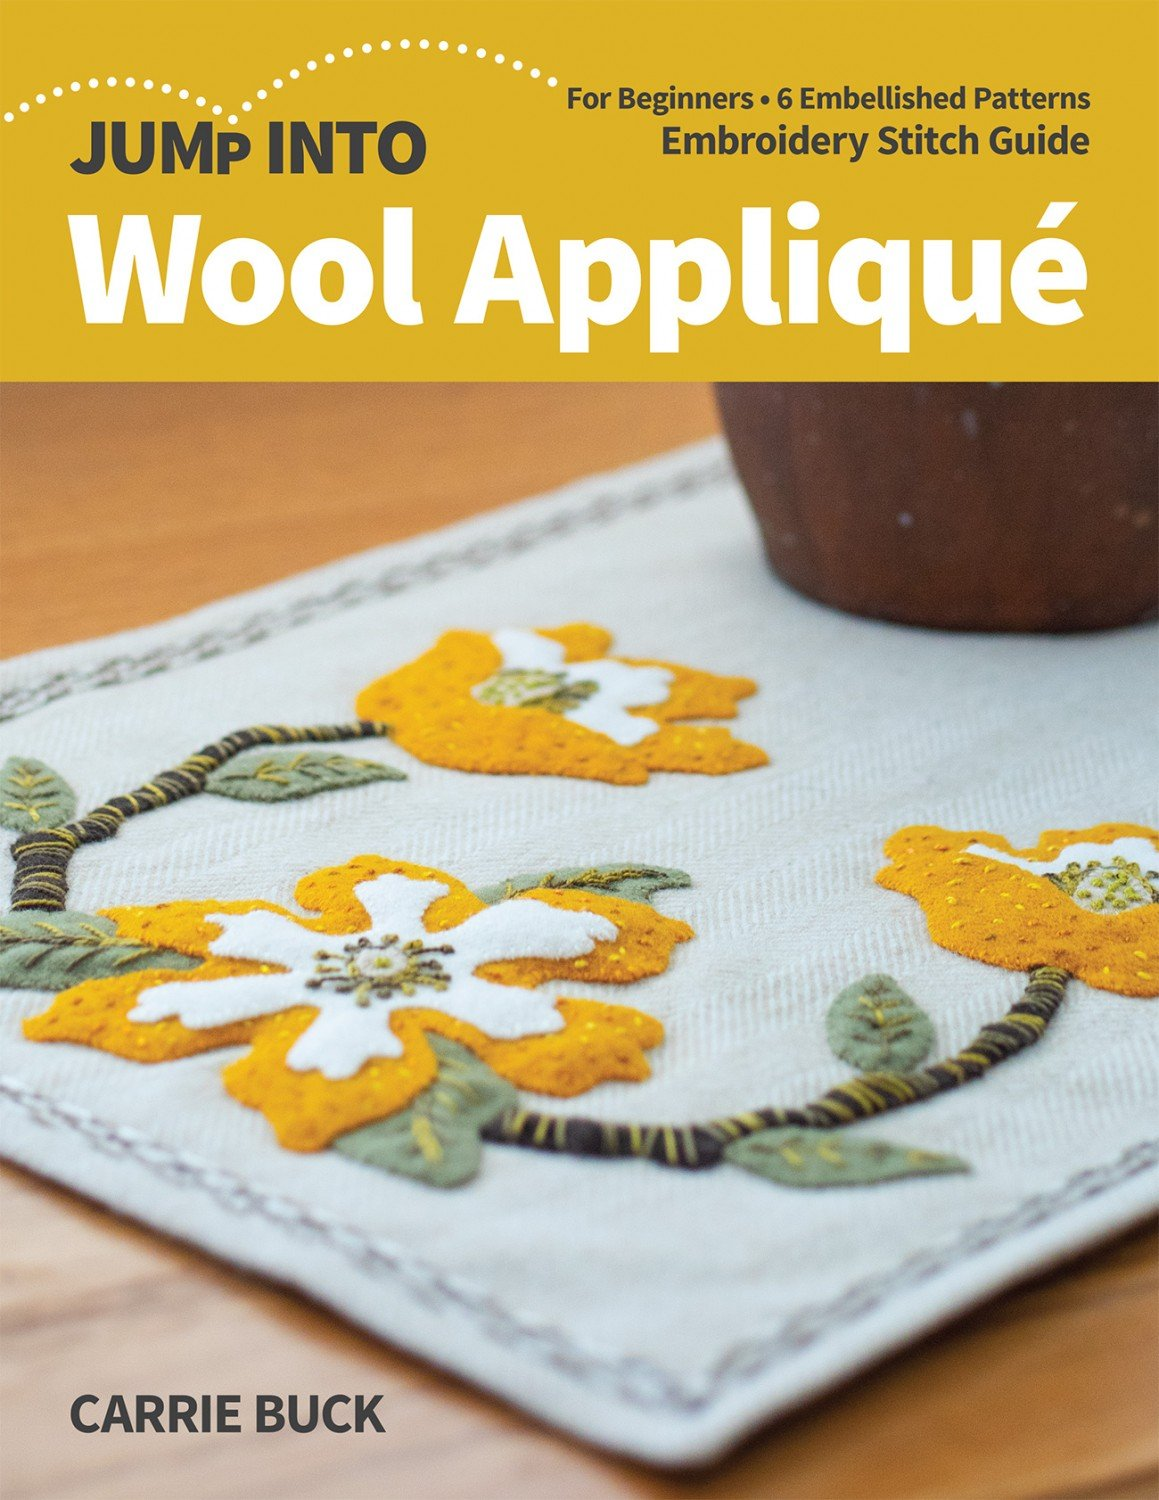 Jump Into Wool Appliqué ~RELEASE DATE MAY 25/21 ~